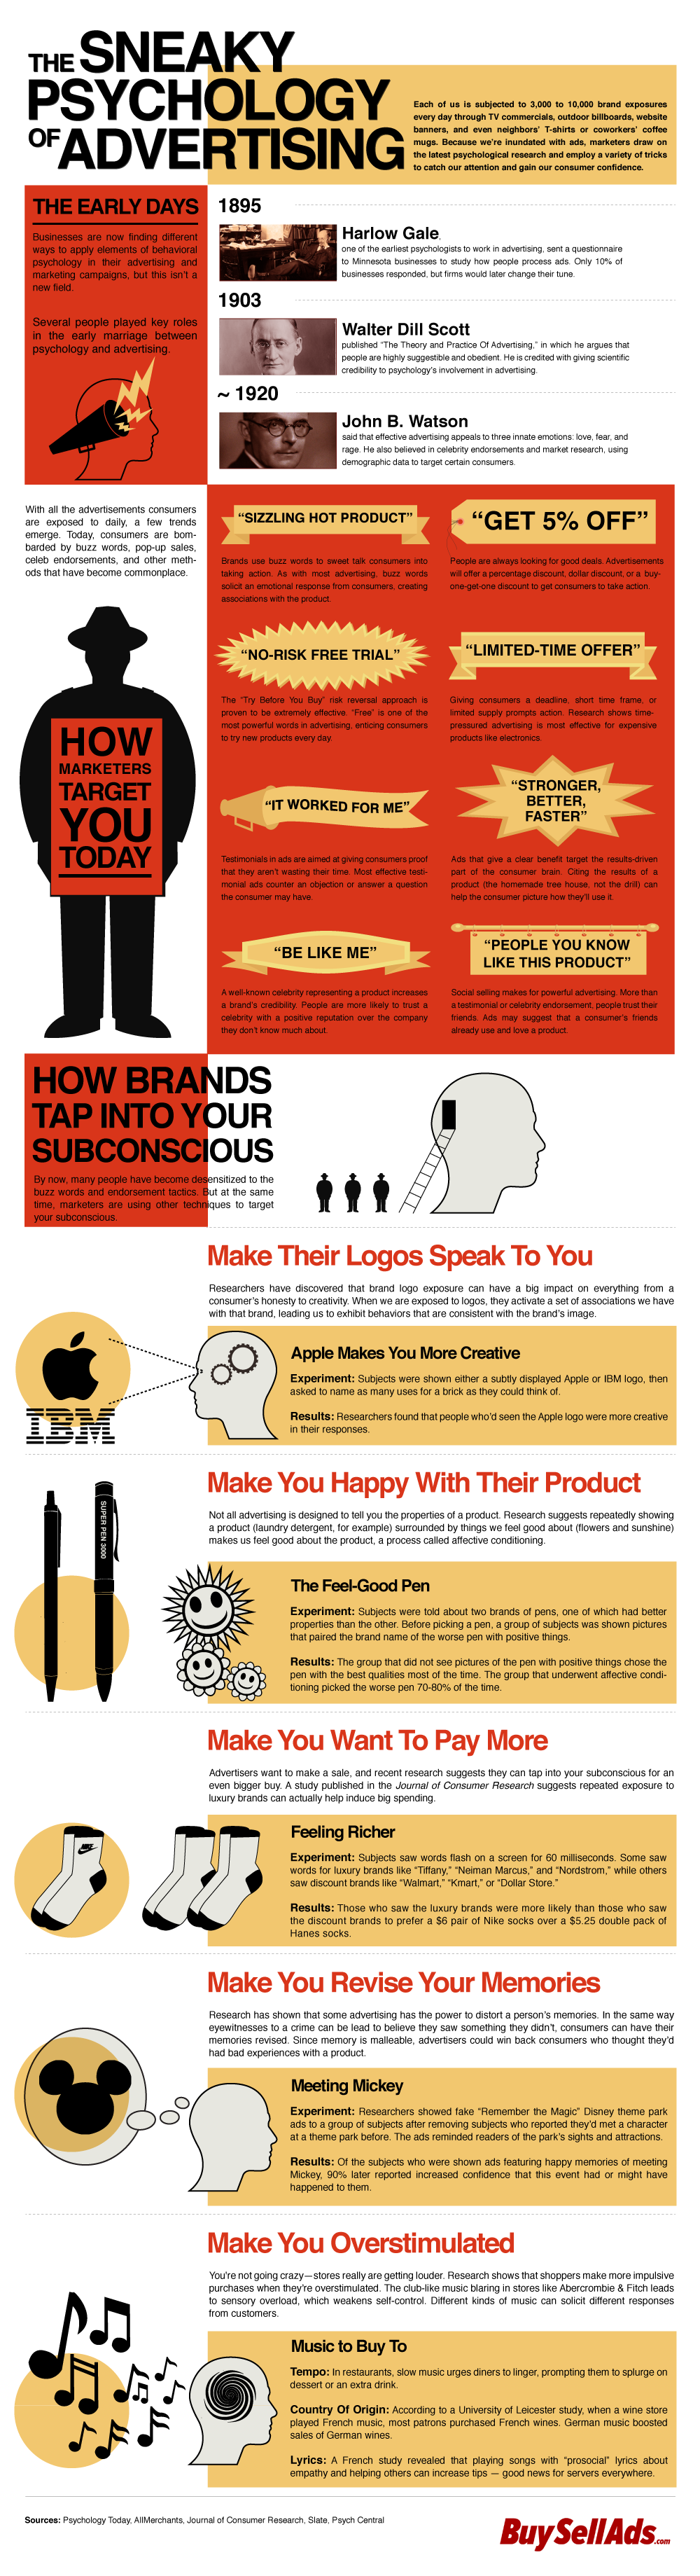 Marketing Psychology Infographic